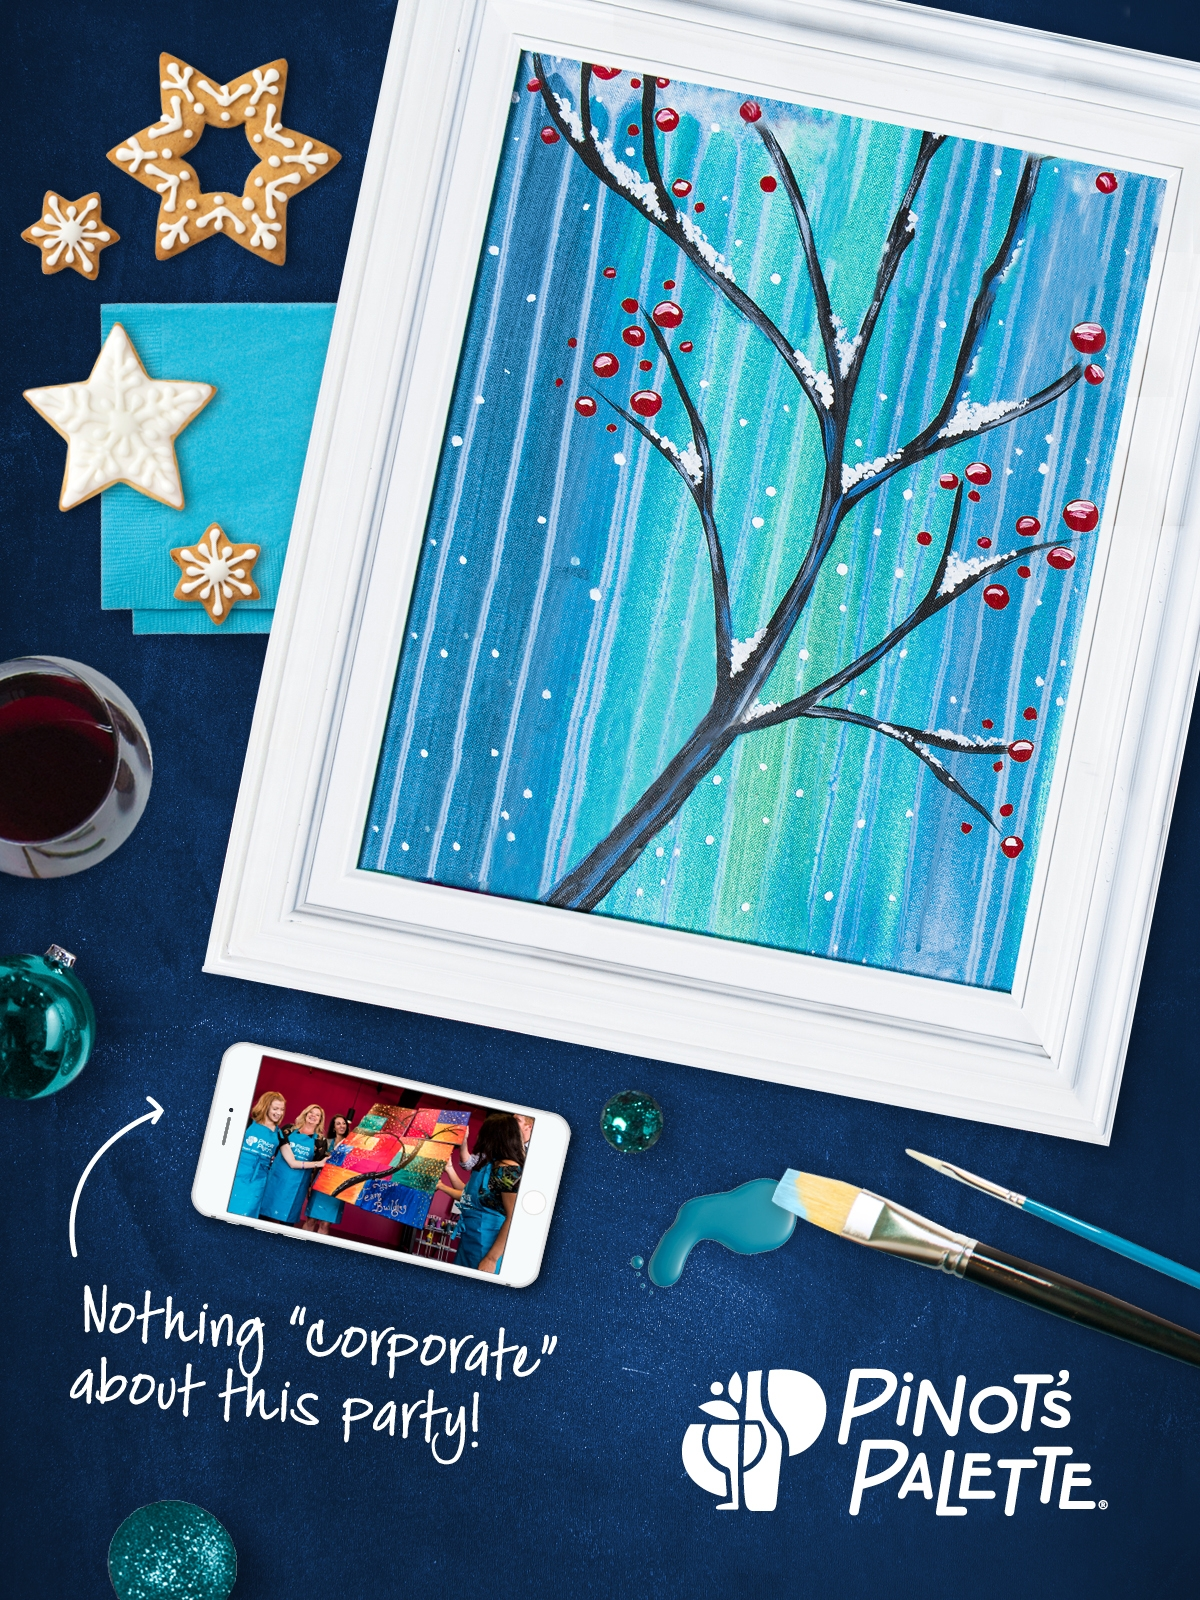 Pinot's Palette Makes A Great Place To Hold Your Holiday Party!